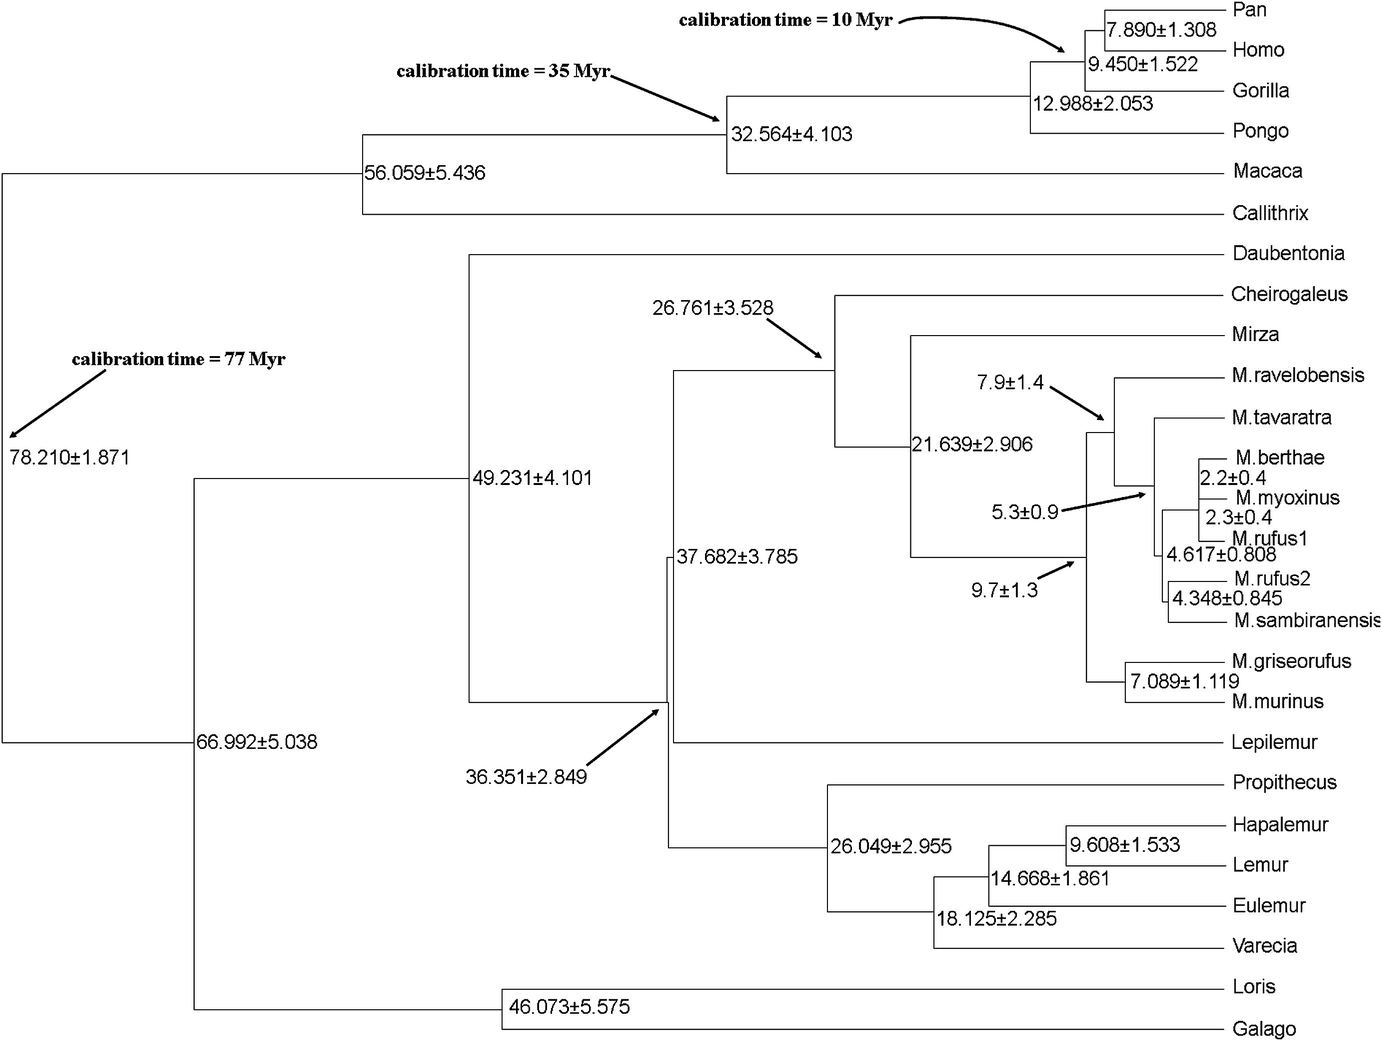 Distance based phylogenetic methods springerlink open image in new window fandeluxe